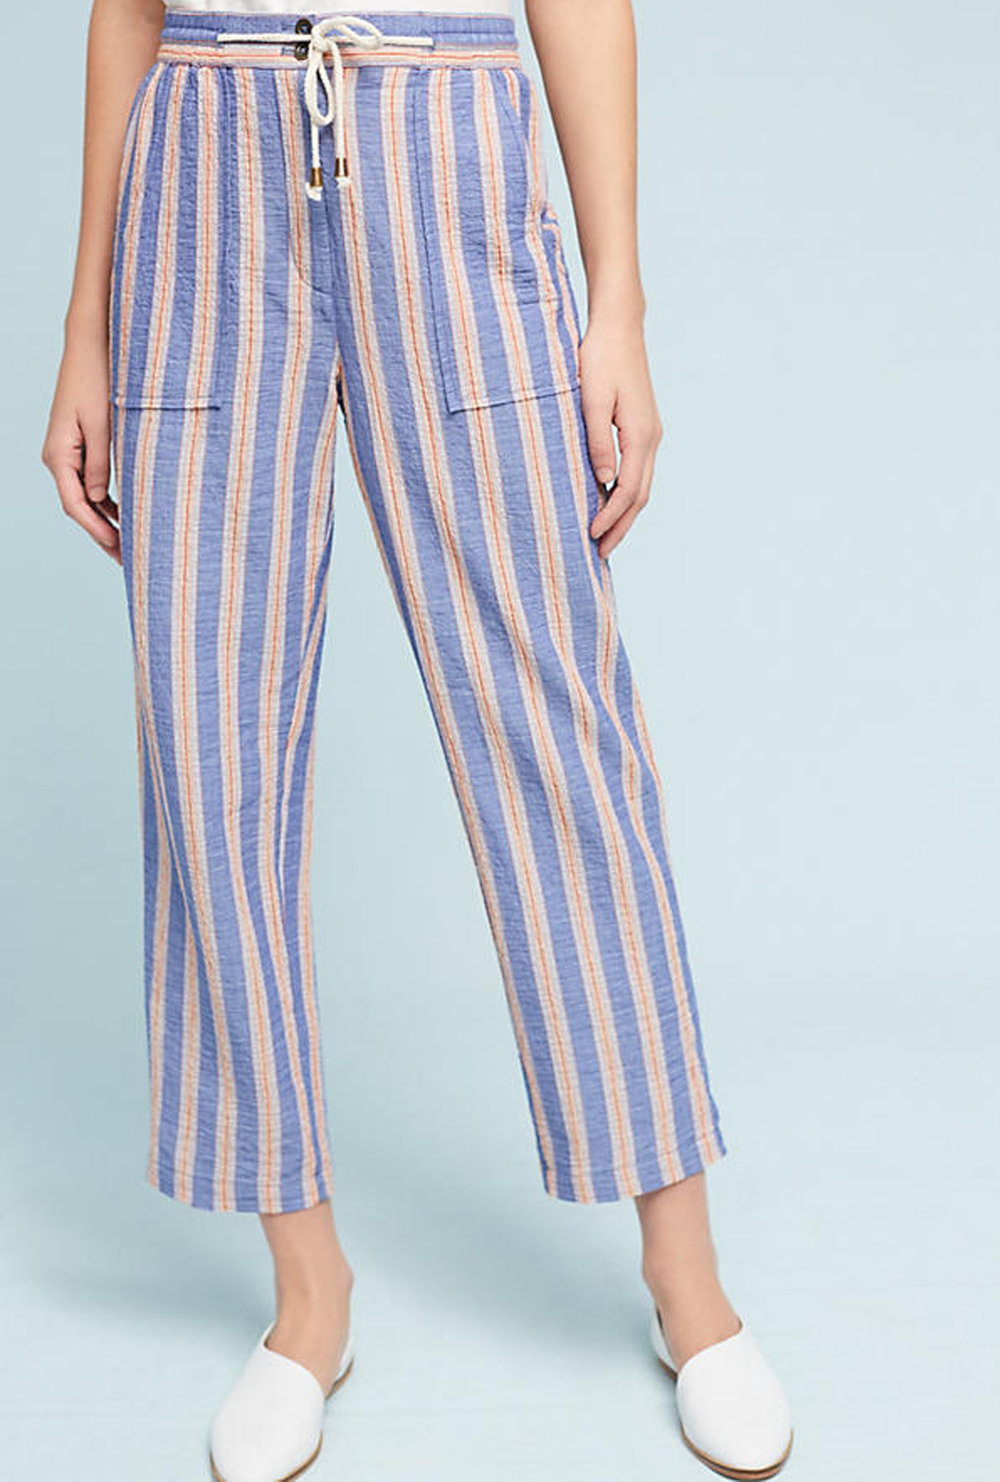 striped pants | @themissprints